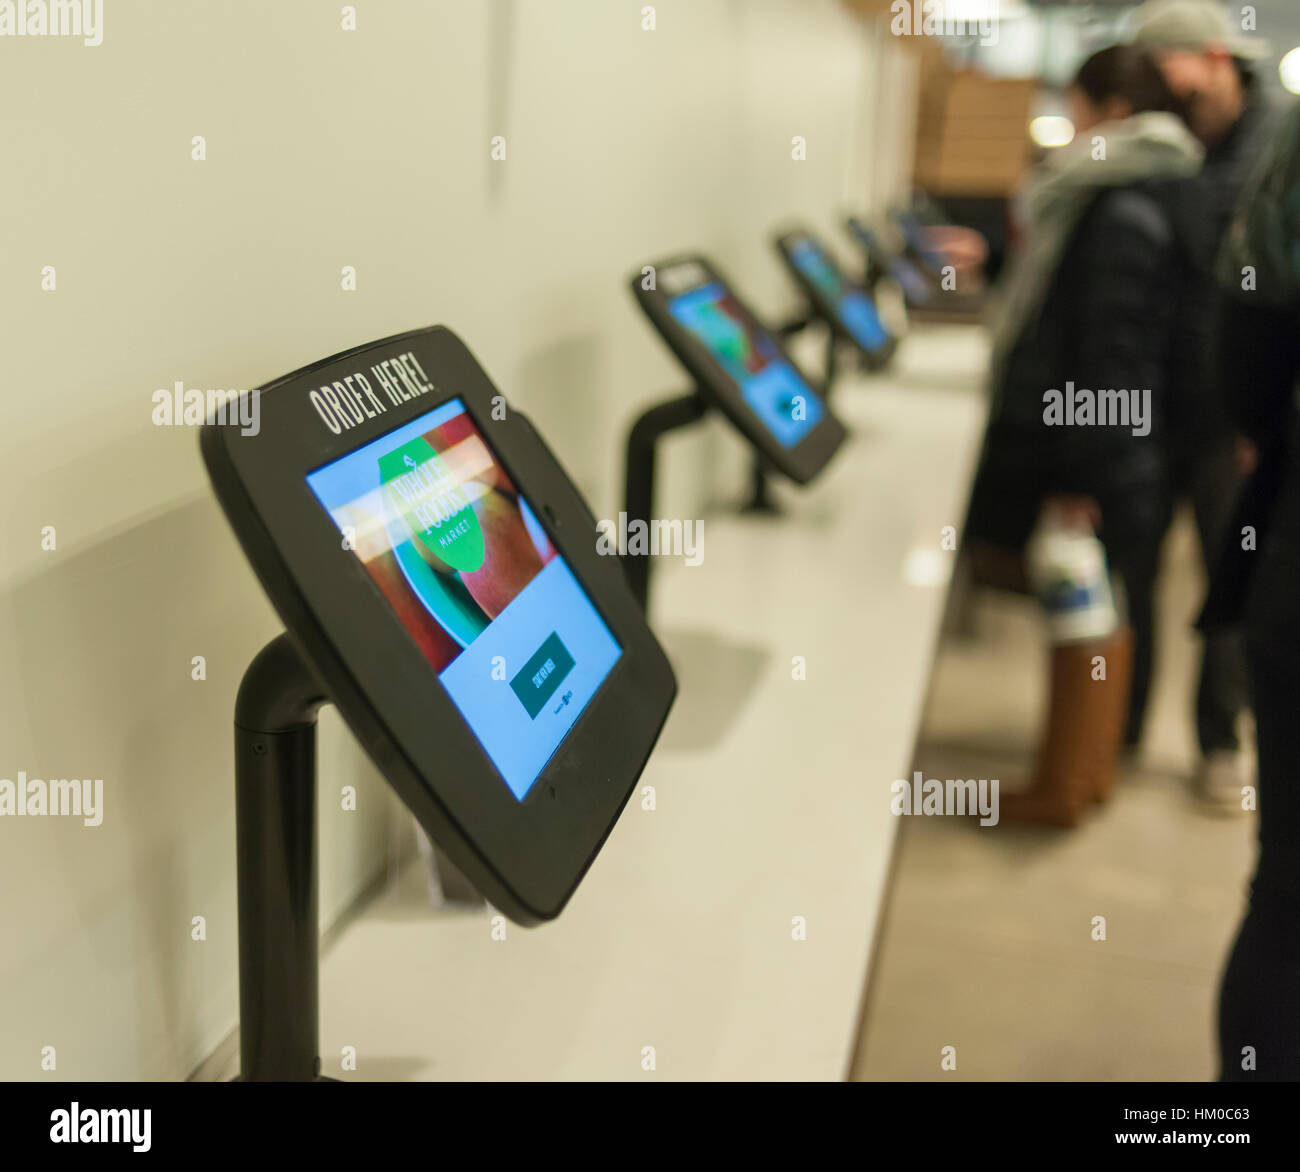 Prepared foods ordering kiosks in the new Whole Foods Market opposite Bryant Park in New York on opening day Saturday, Stock Photo